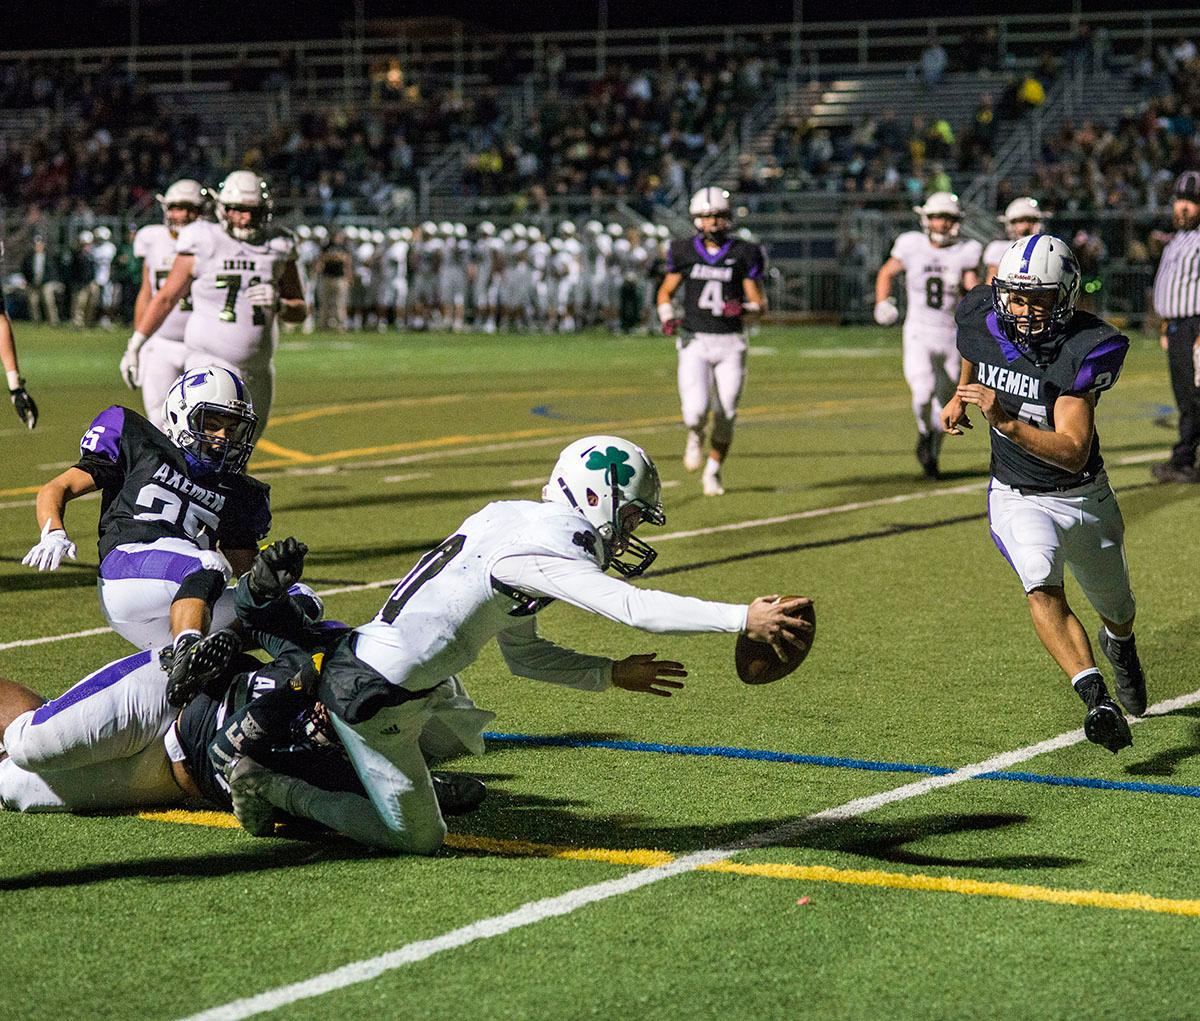 Sheldon Irish Carter Helikson (#10) reaches for the goal line. Sheldon Irish defeated South Eugene Axemen 63-6 on Friday night at South Eugene Highschool in Eugene, Ore. Photo by Dan Morrison, Oregon News Lab